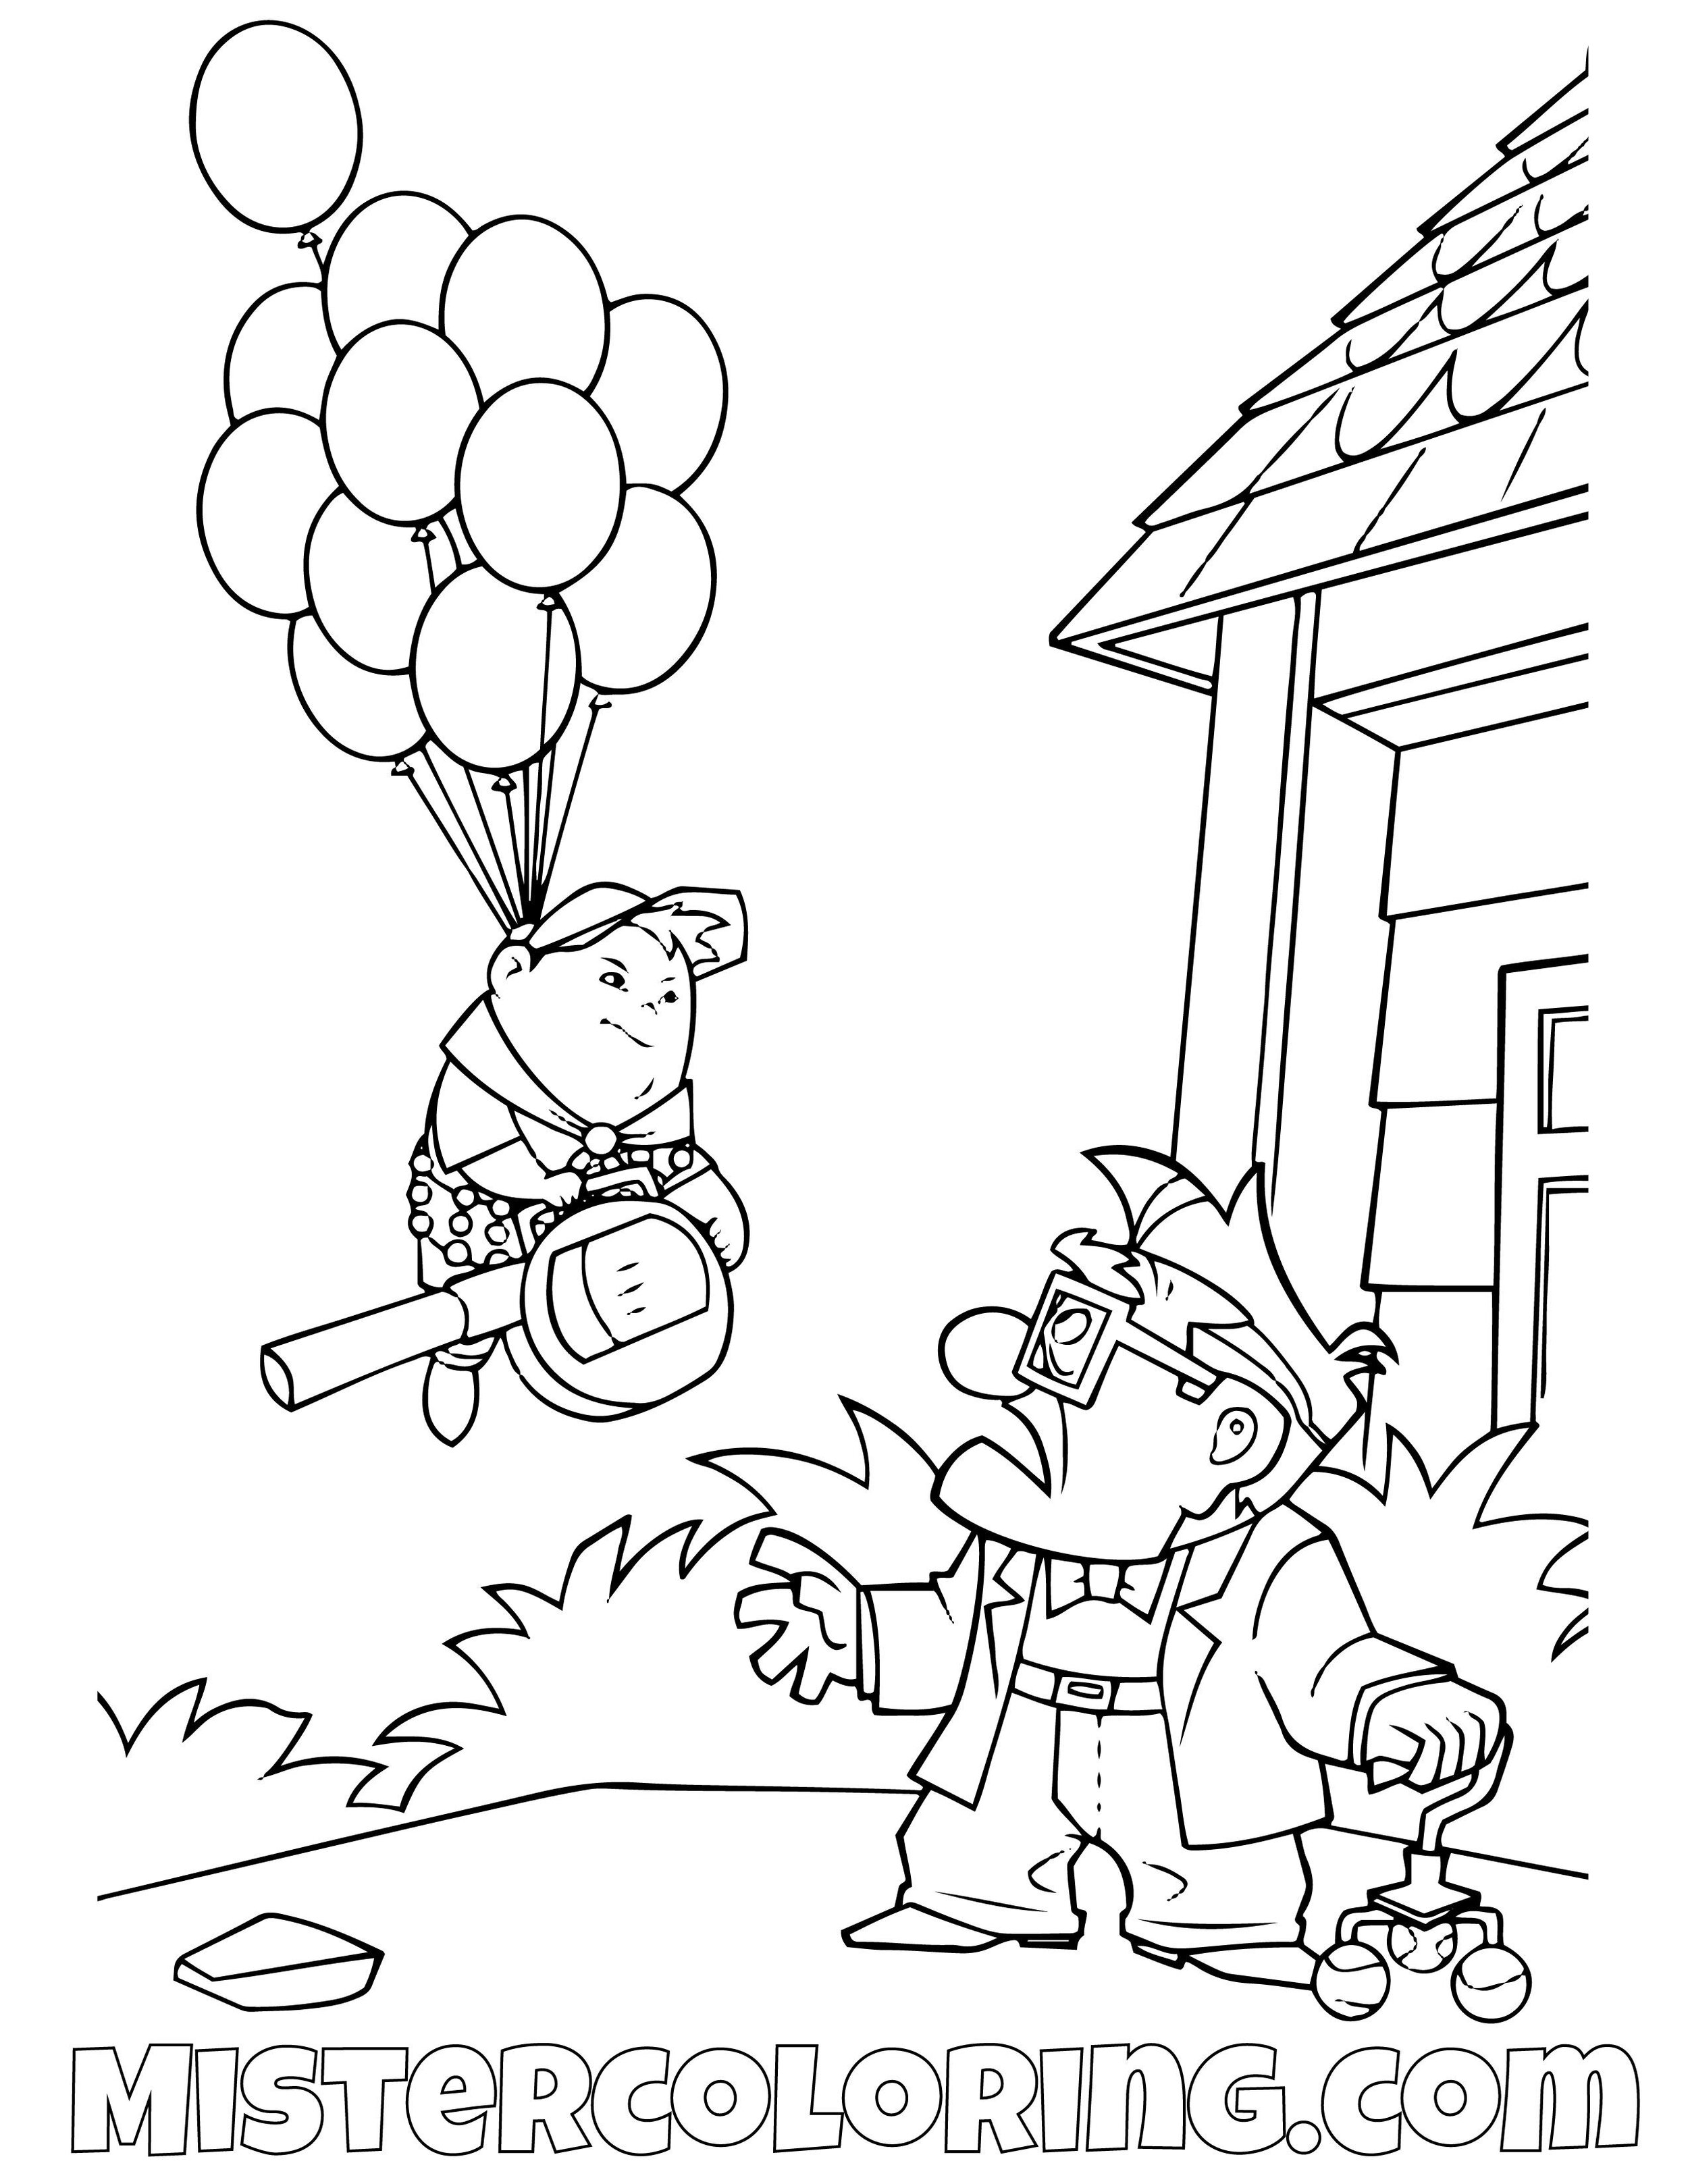 - UP Coloring Pages For Kids — Mister Coloring